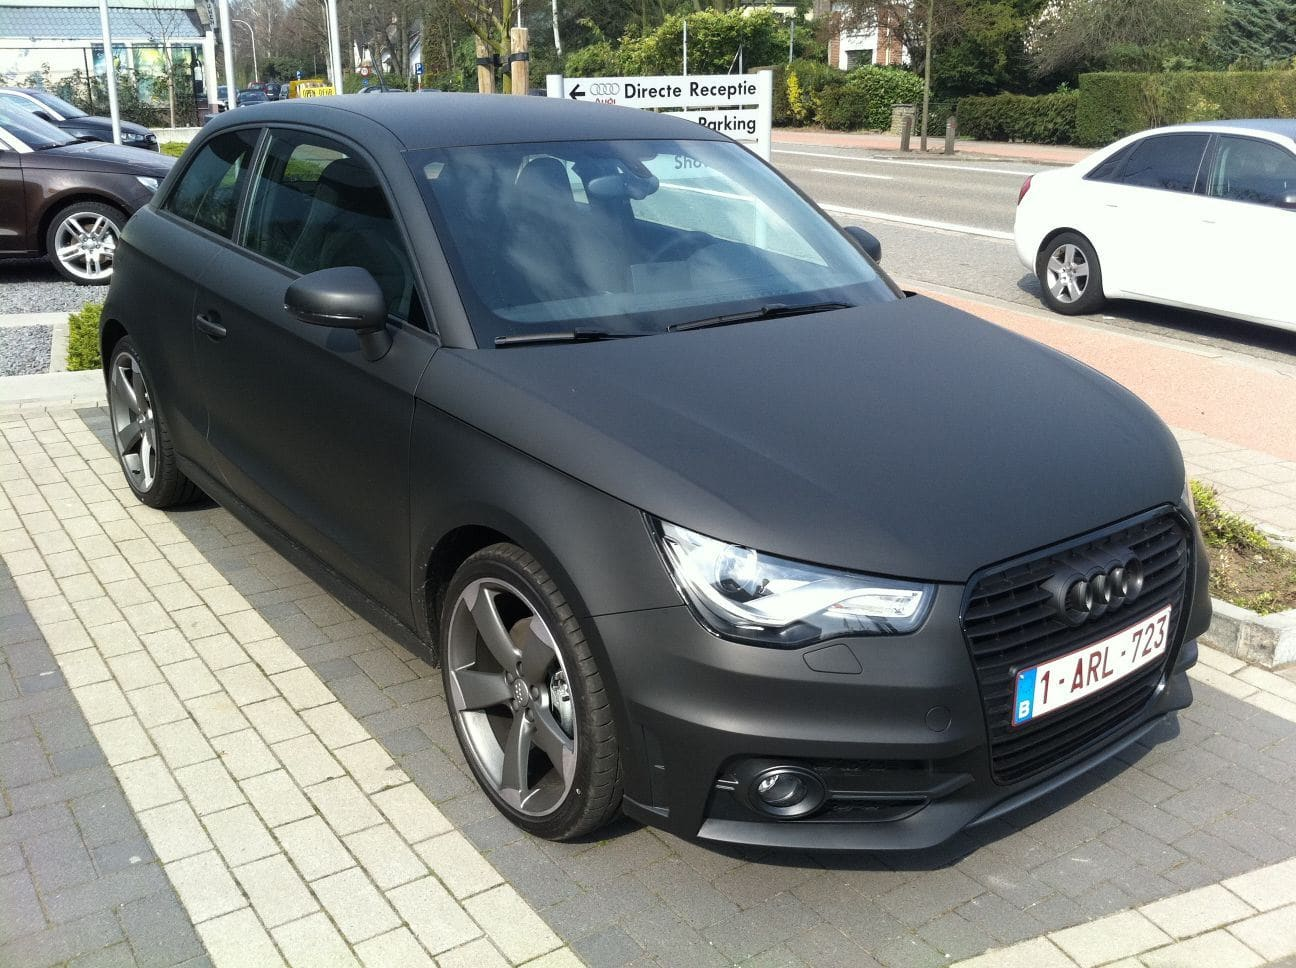 audi a1 met mat zwarte wrap wrap my ride. Black Bedroom Furniture Sets. Home Design Ideas